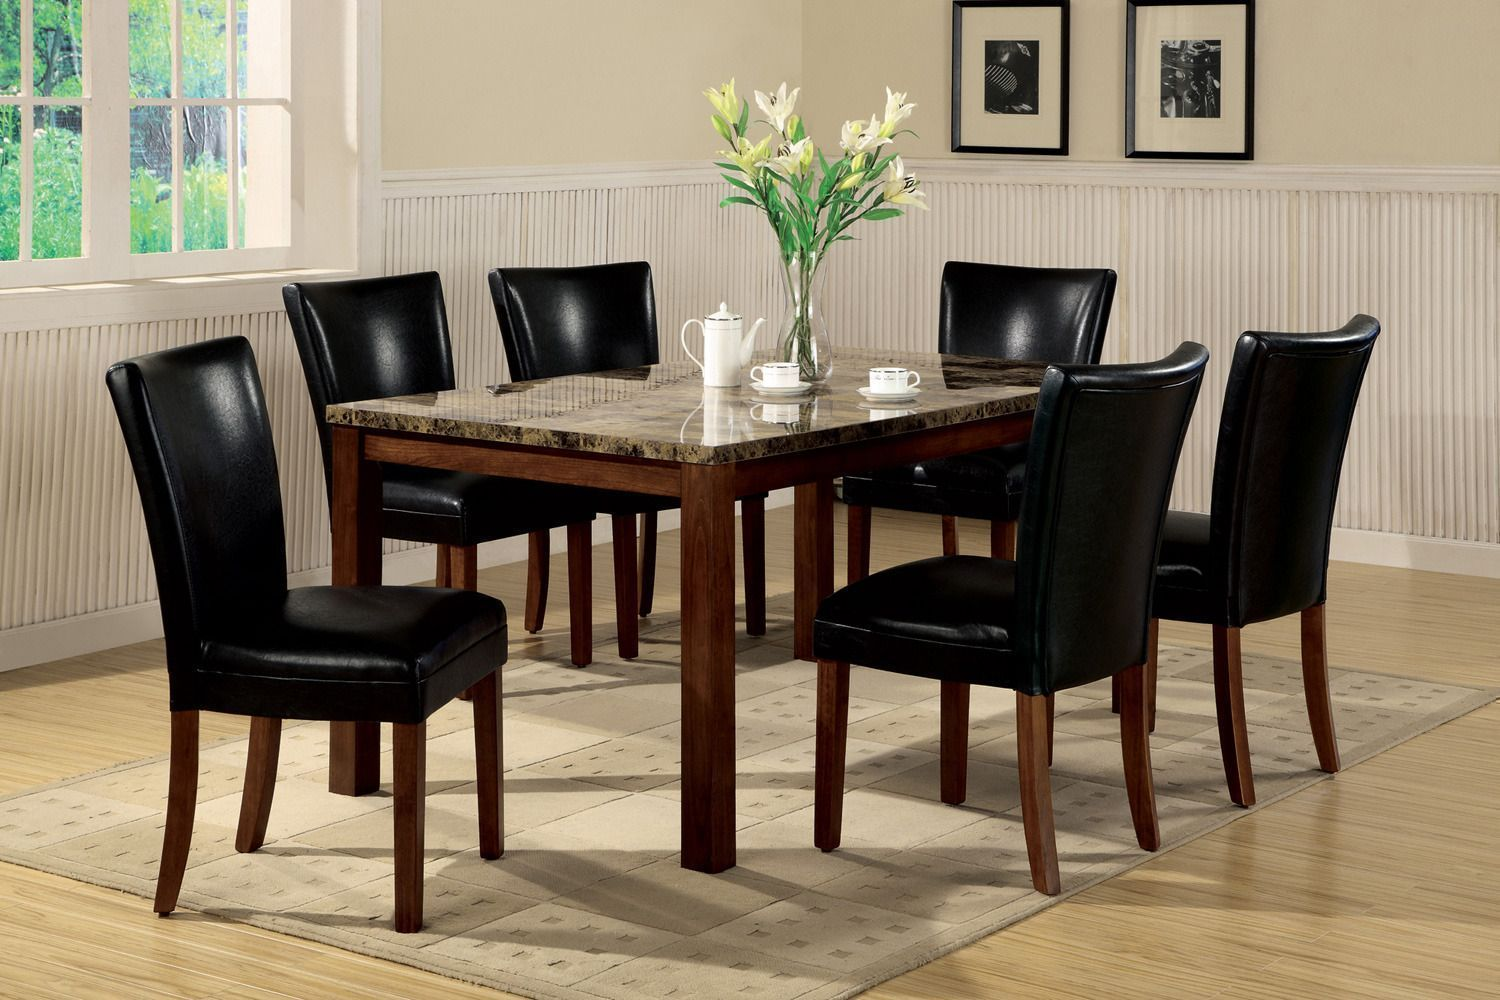 Telegraph Rectangluar Leg Table Dining Room Set Coaster Furniture Home Gallery Stores Dining Table Marble Marble Top Dining Table Cherry Dining Room Sets